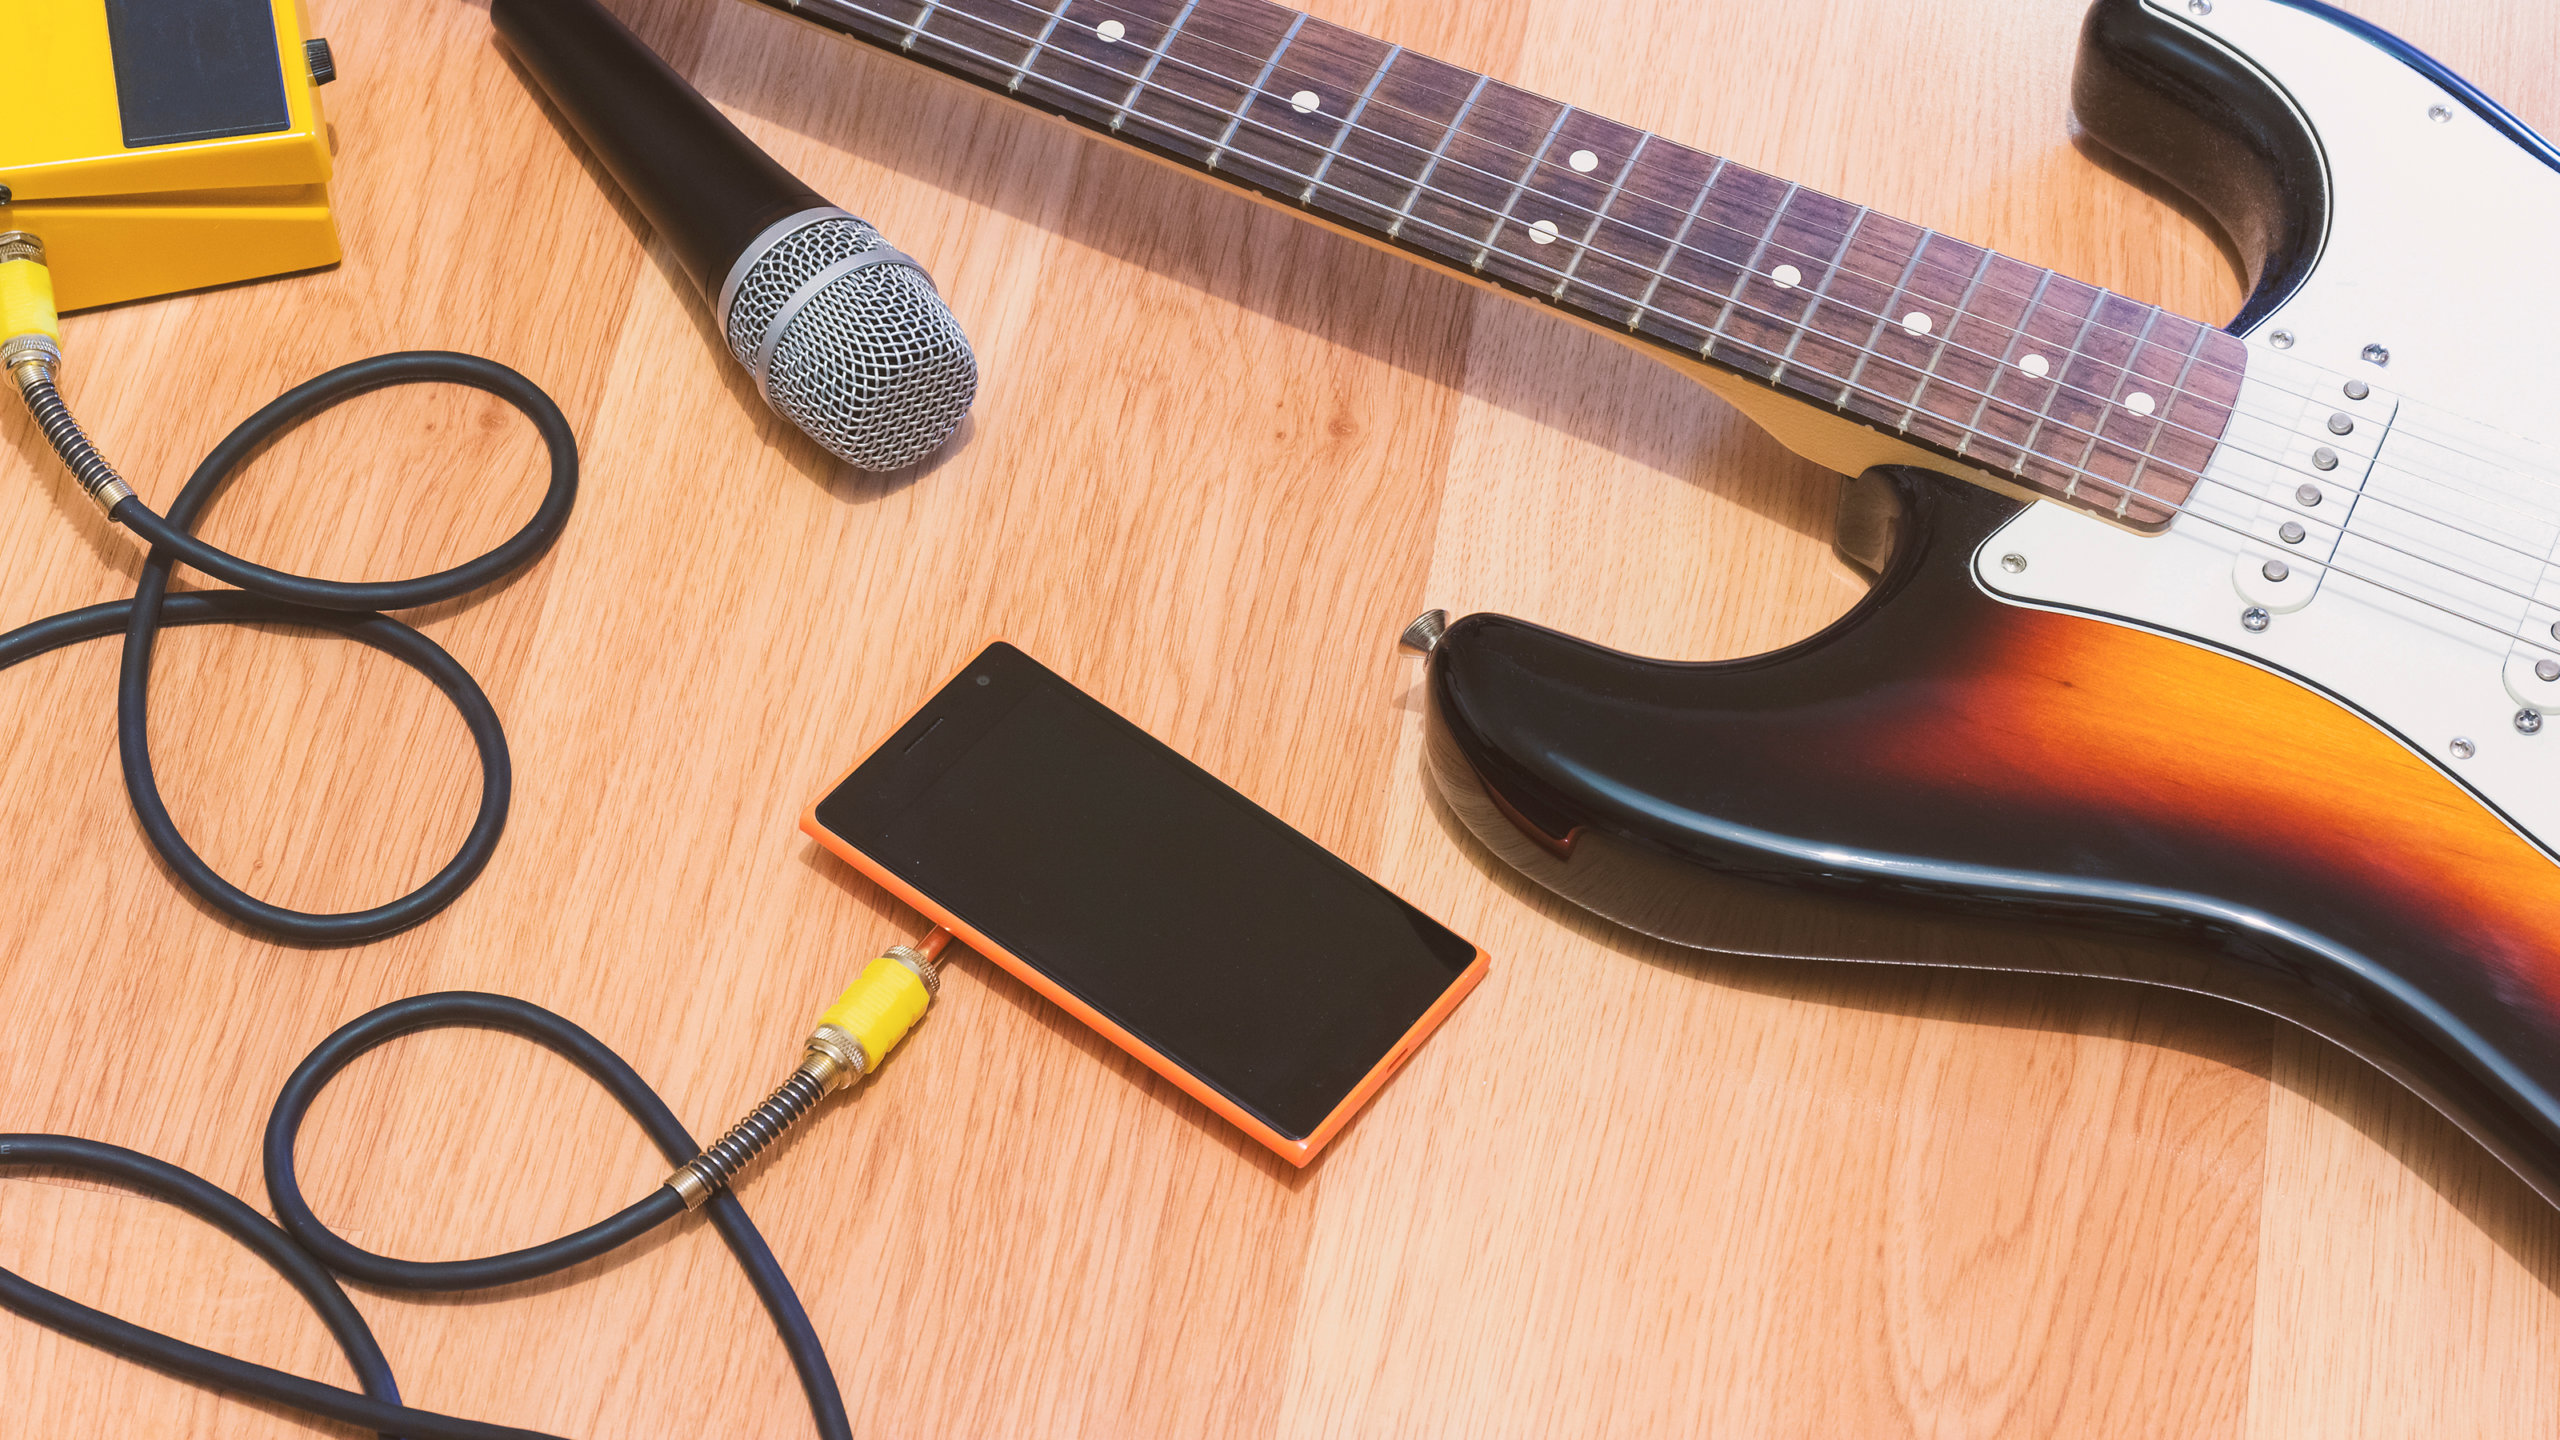 How the iPhone can help you make music